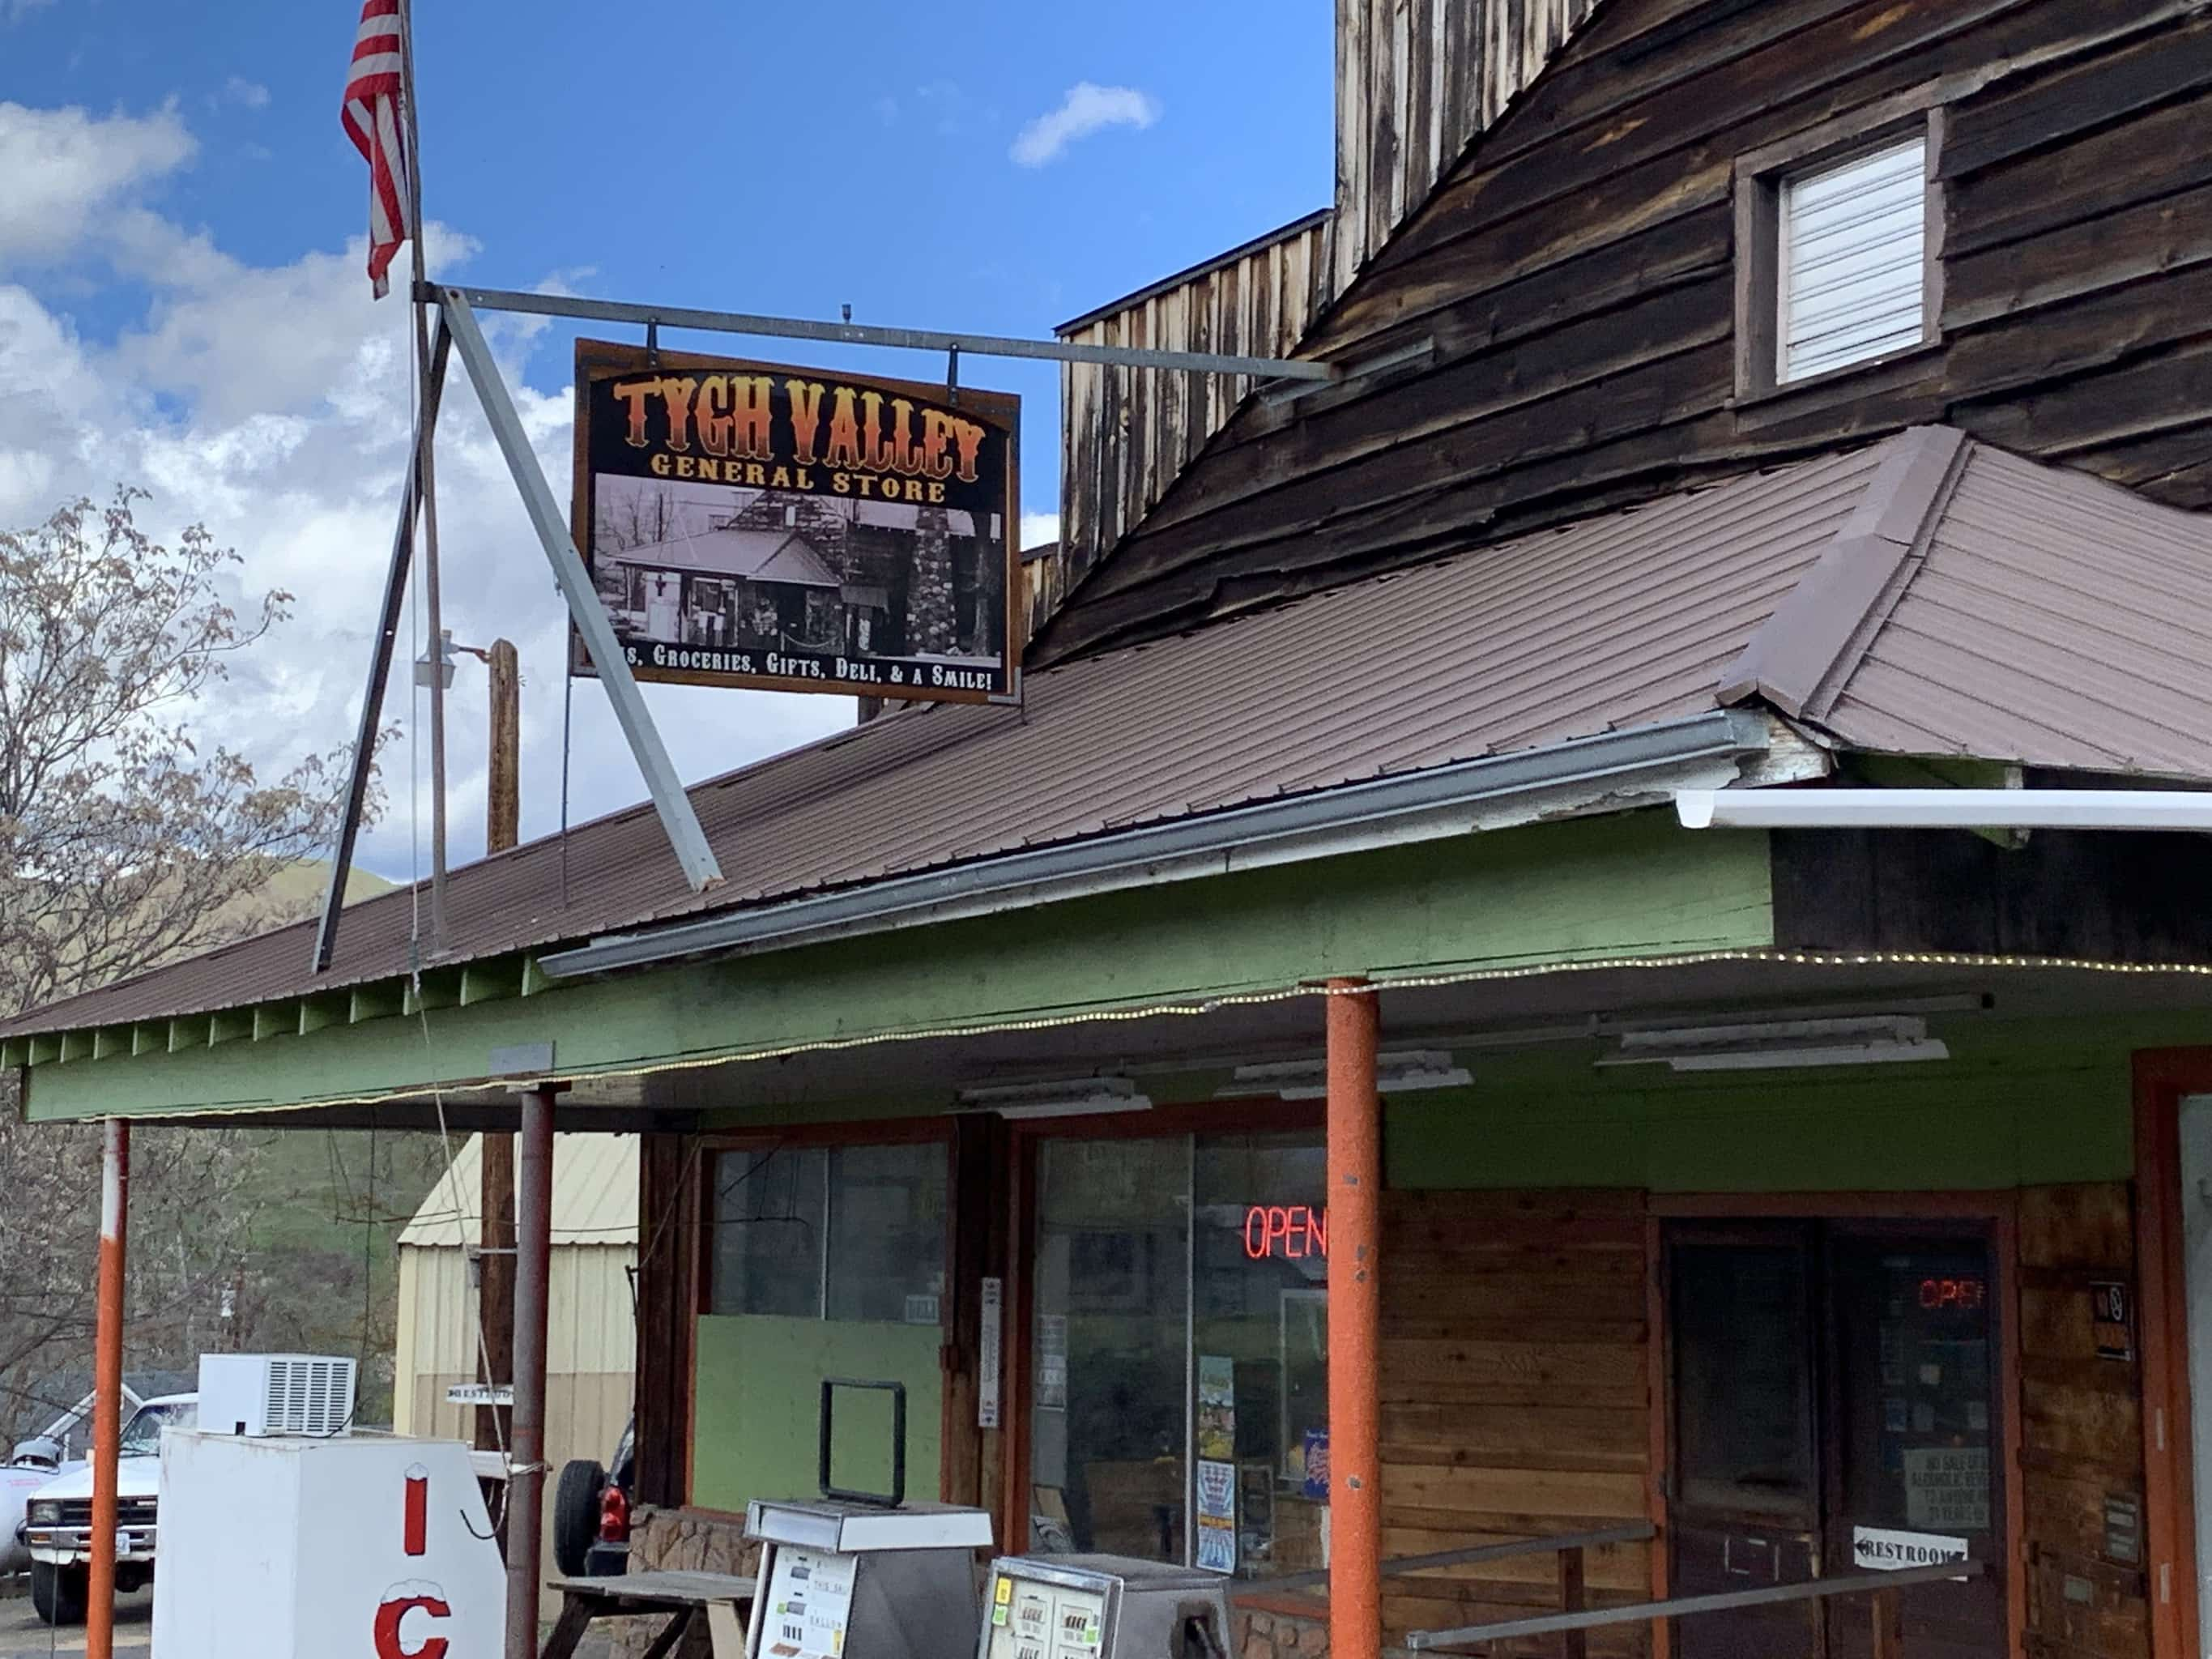 Tygh Valley General Store.